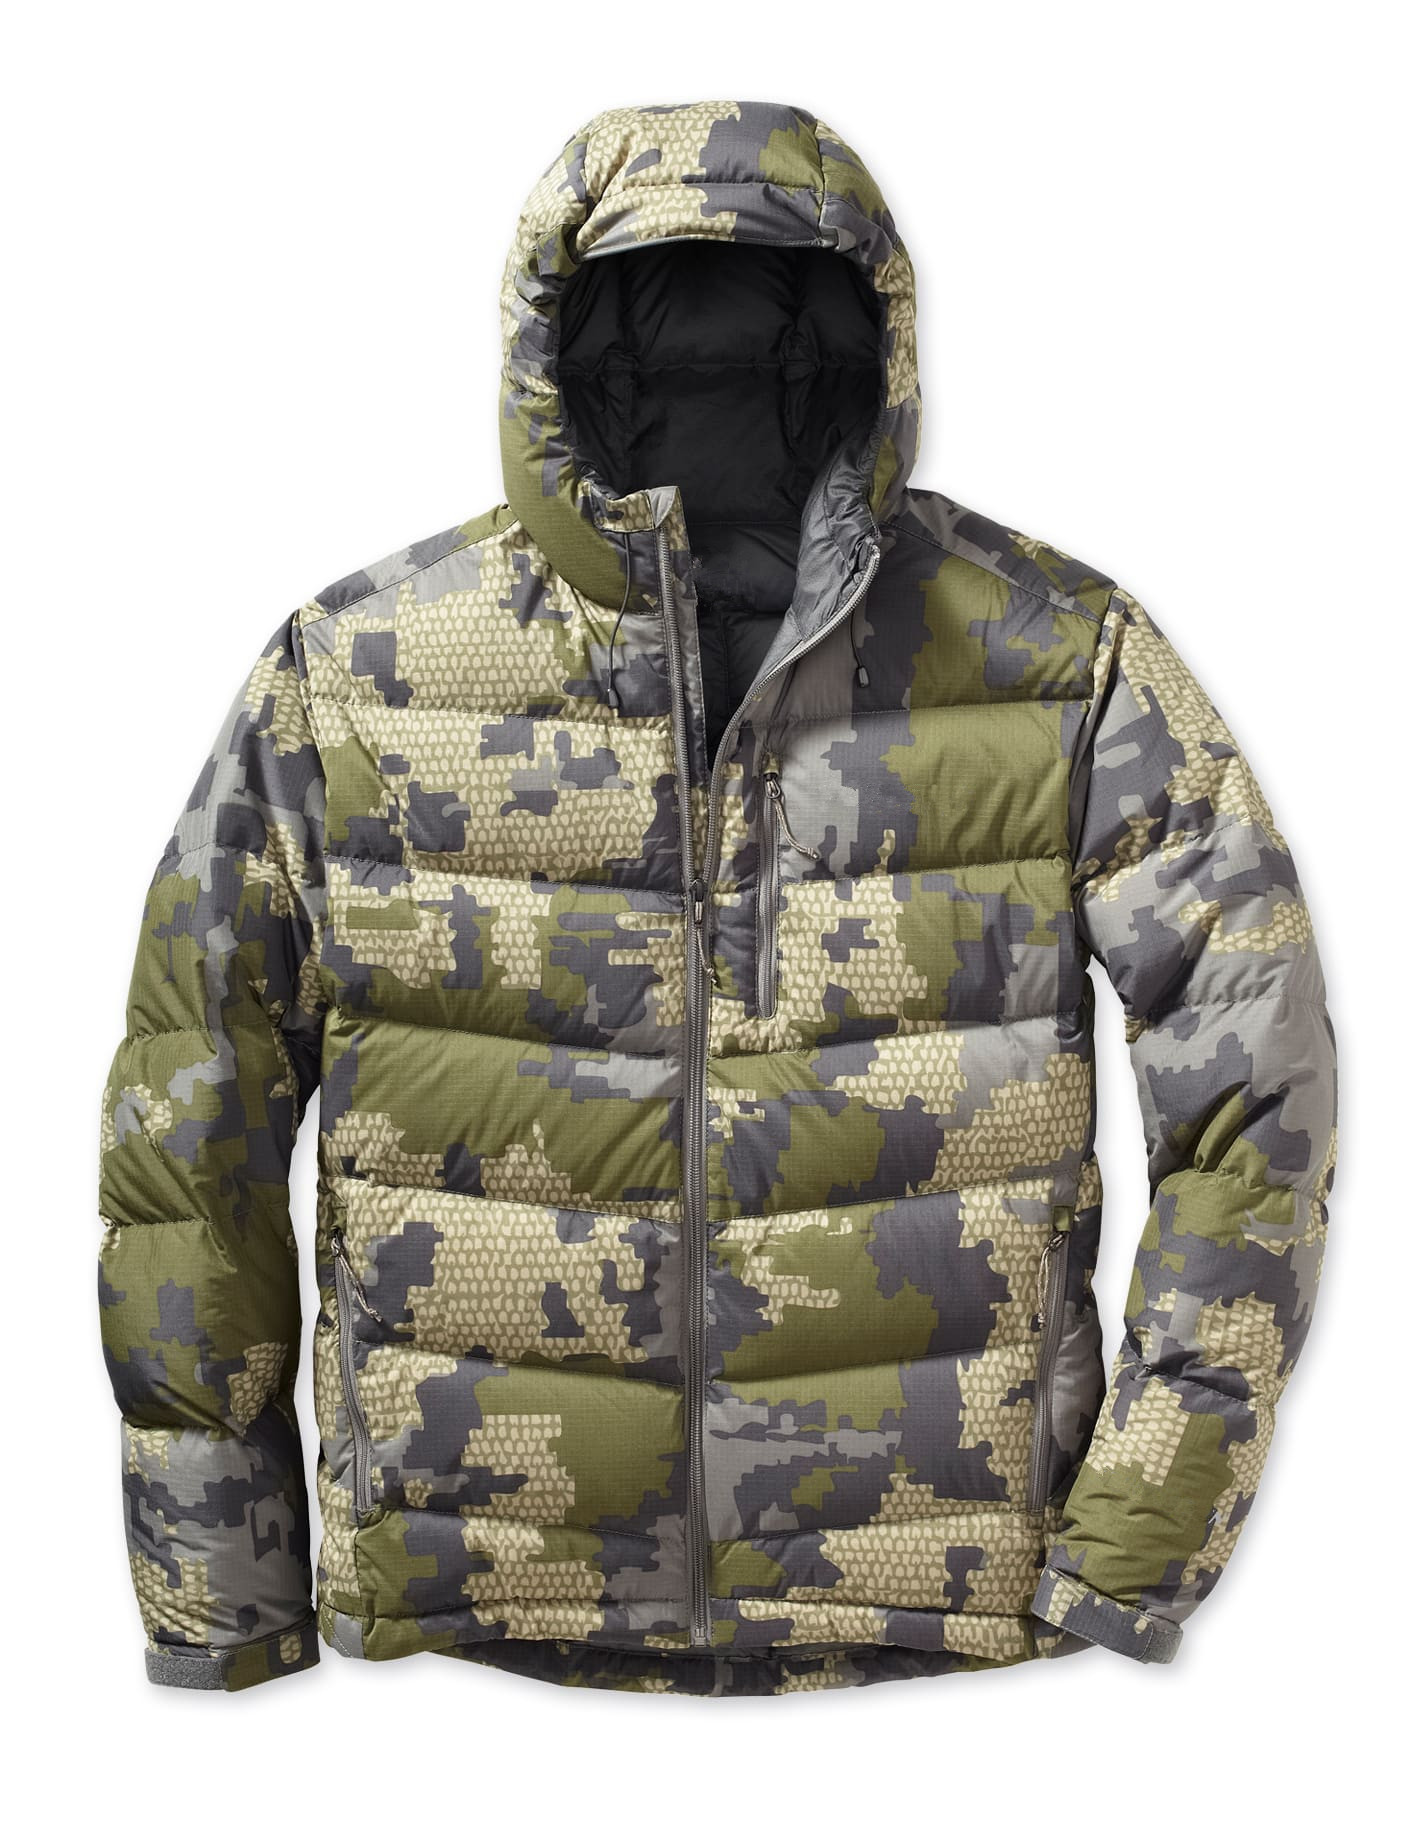 New Design Folding Puffy Down Jacket Lightweight Camouflage Down Jacket